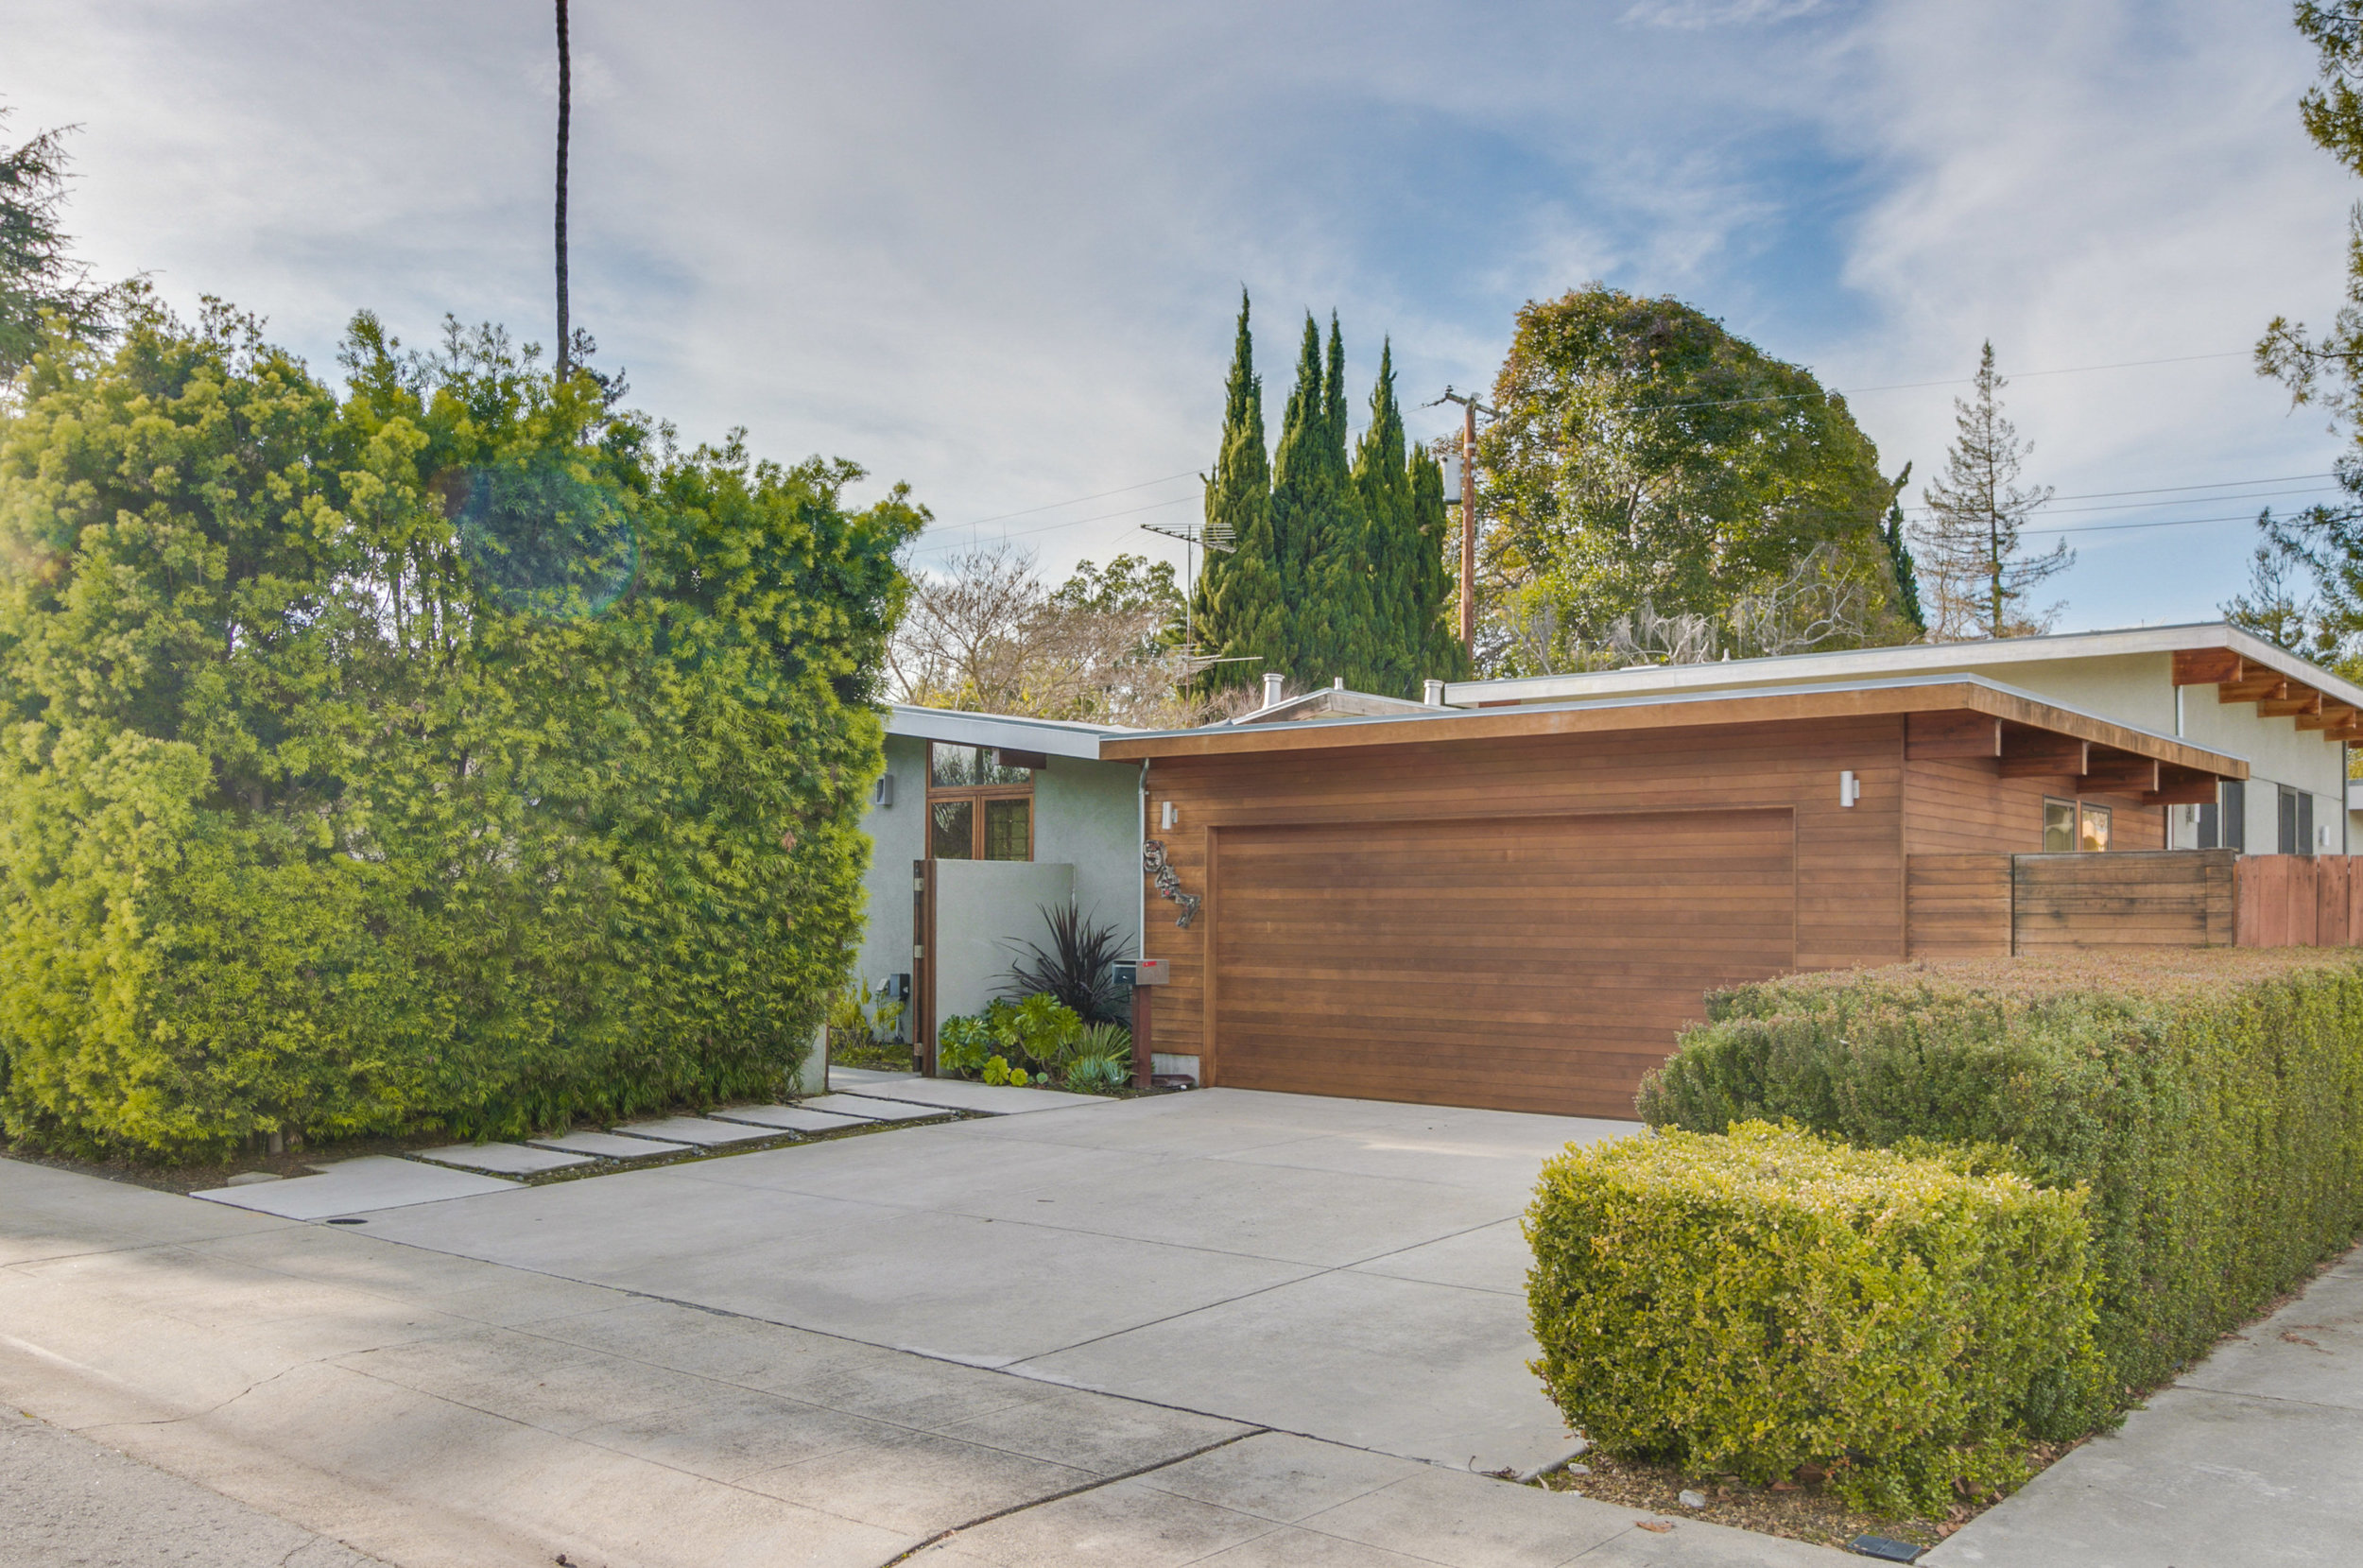 947 Celia Dr, Palo Alto   Sold for $2,980,000